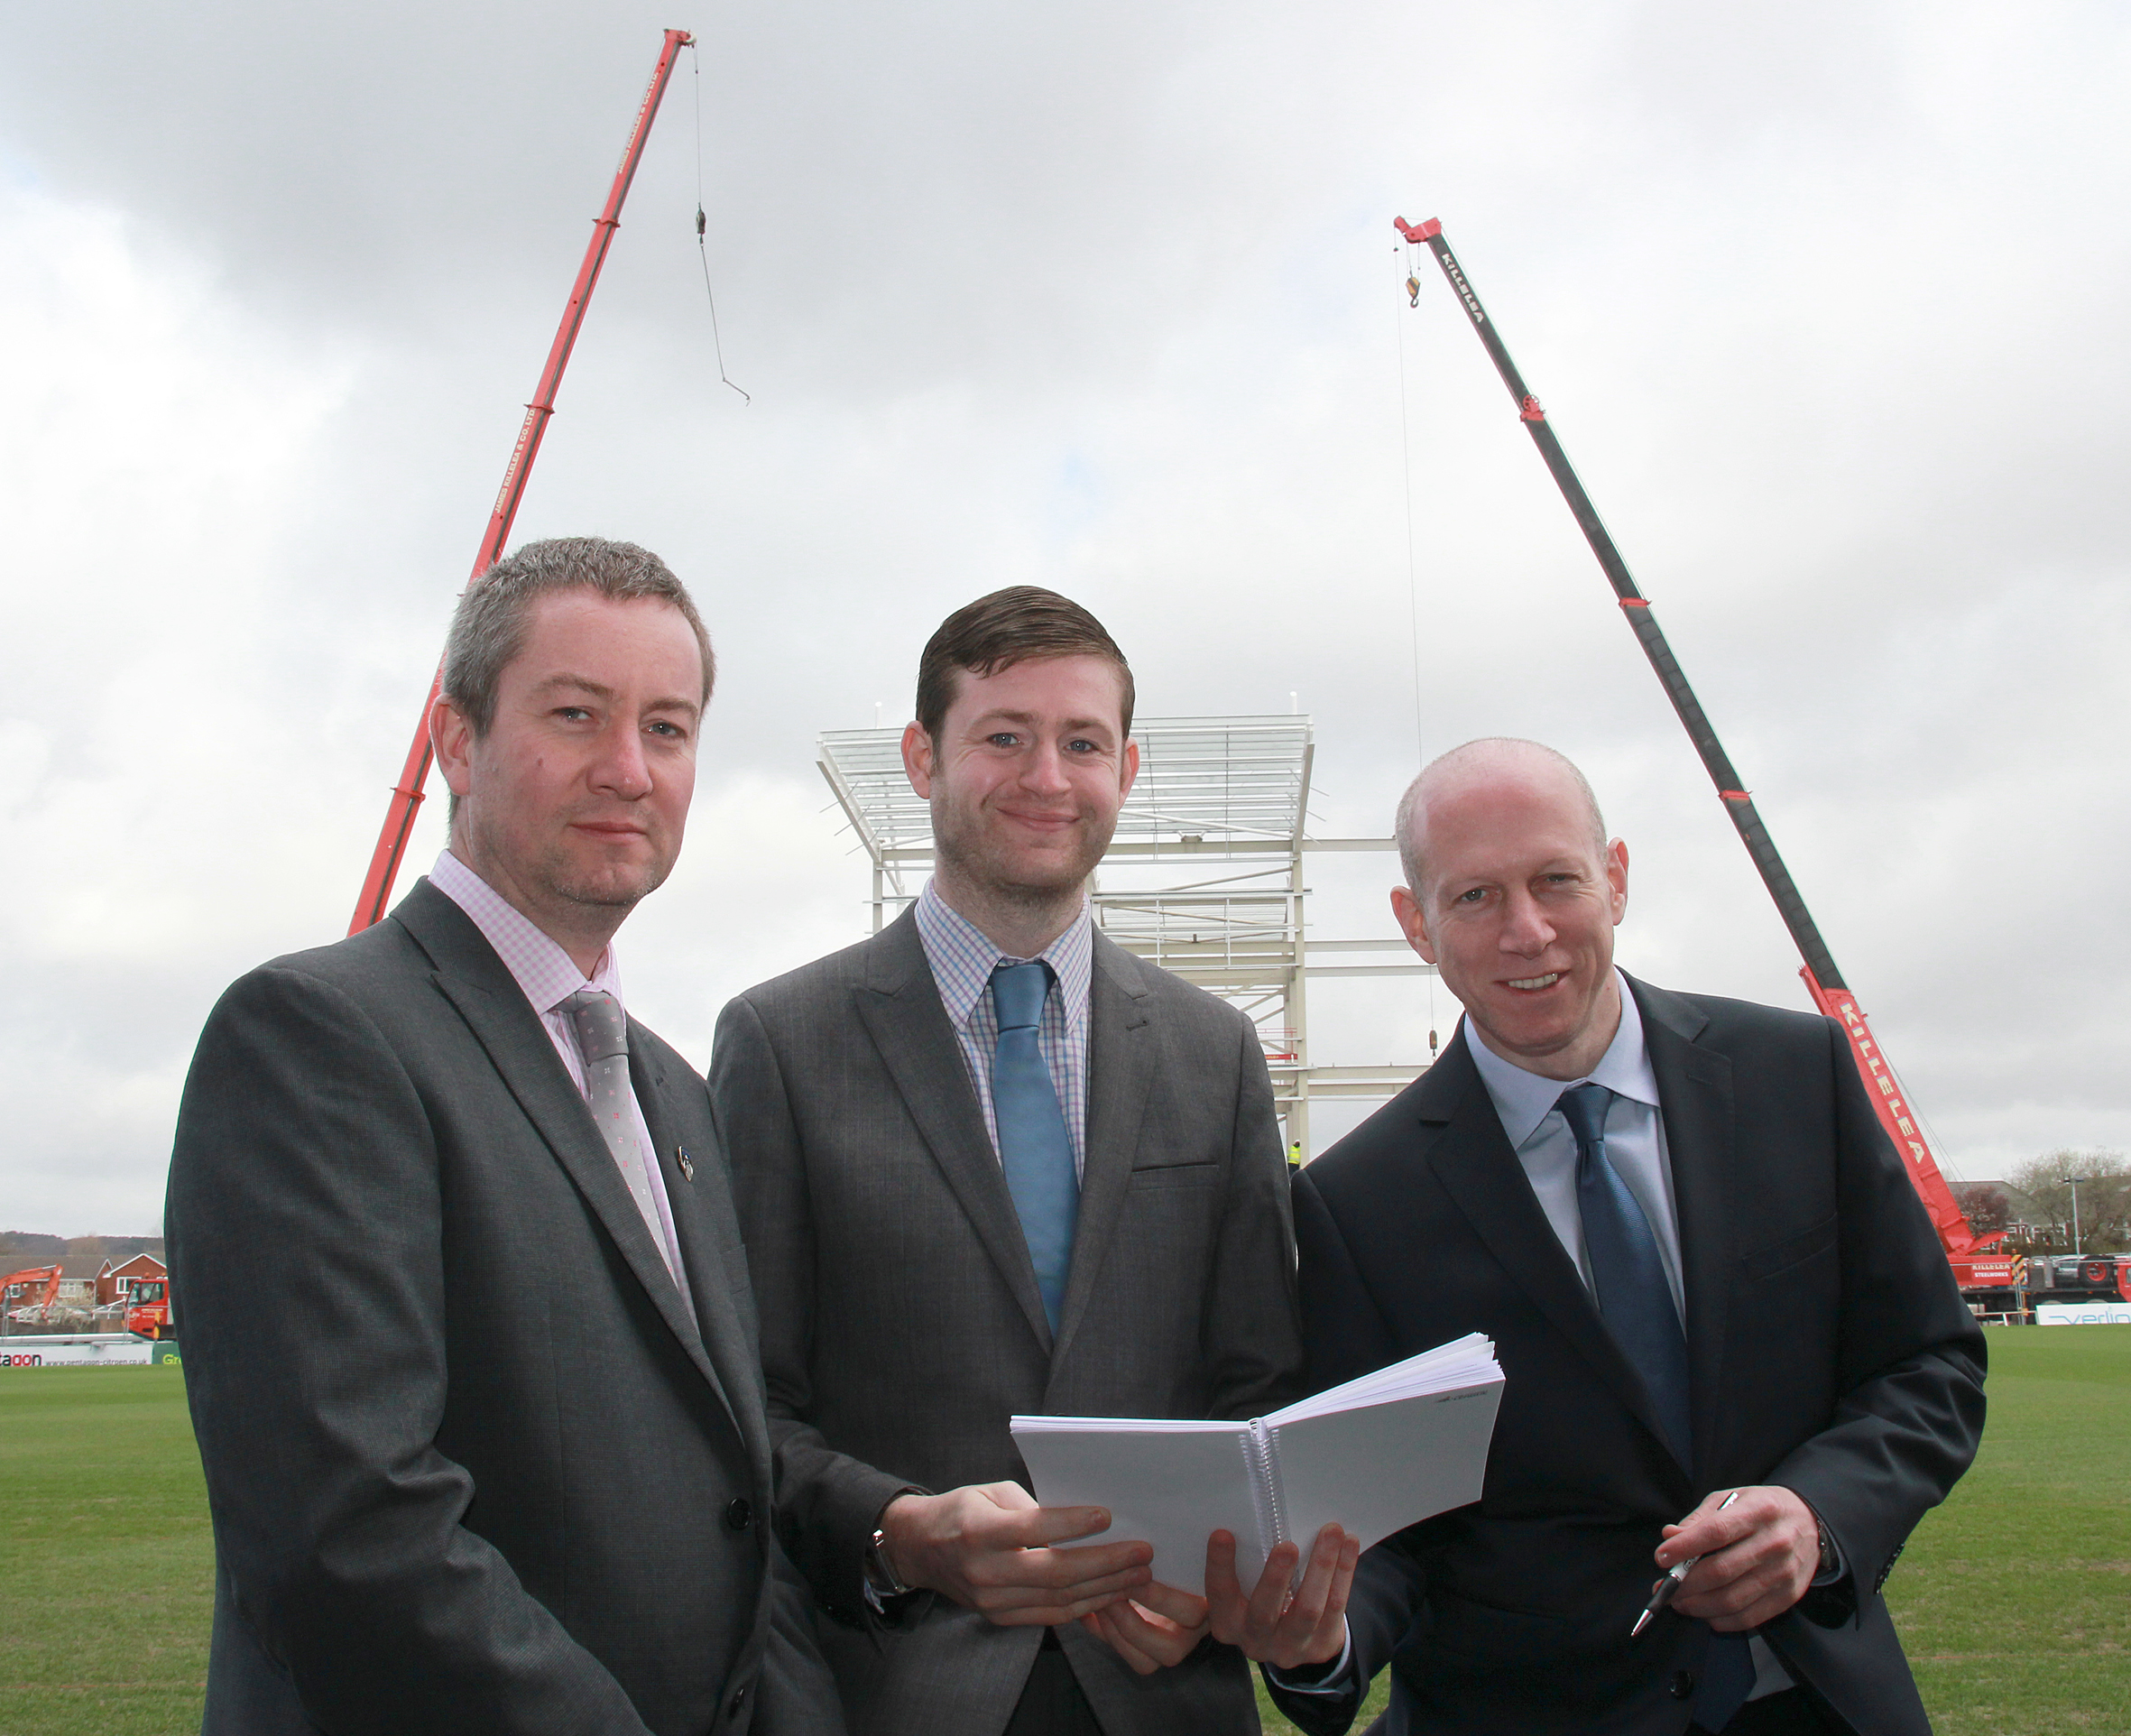 Neil Joy, Latics' Chief Executive with Jim McMahon, Oldham Council Leader, and Simon Corney, Latics' Chairman in front of the new North Stand.